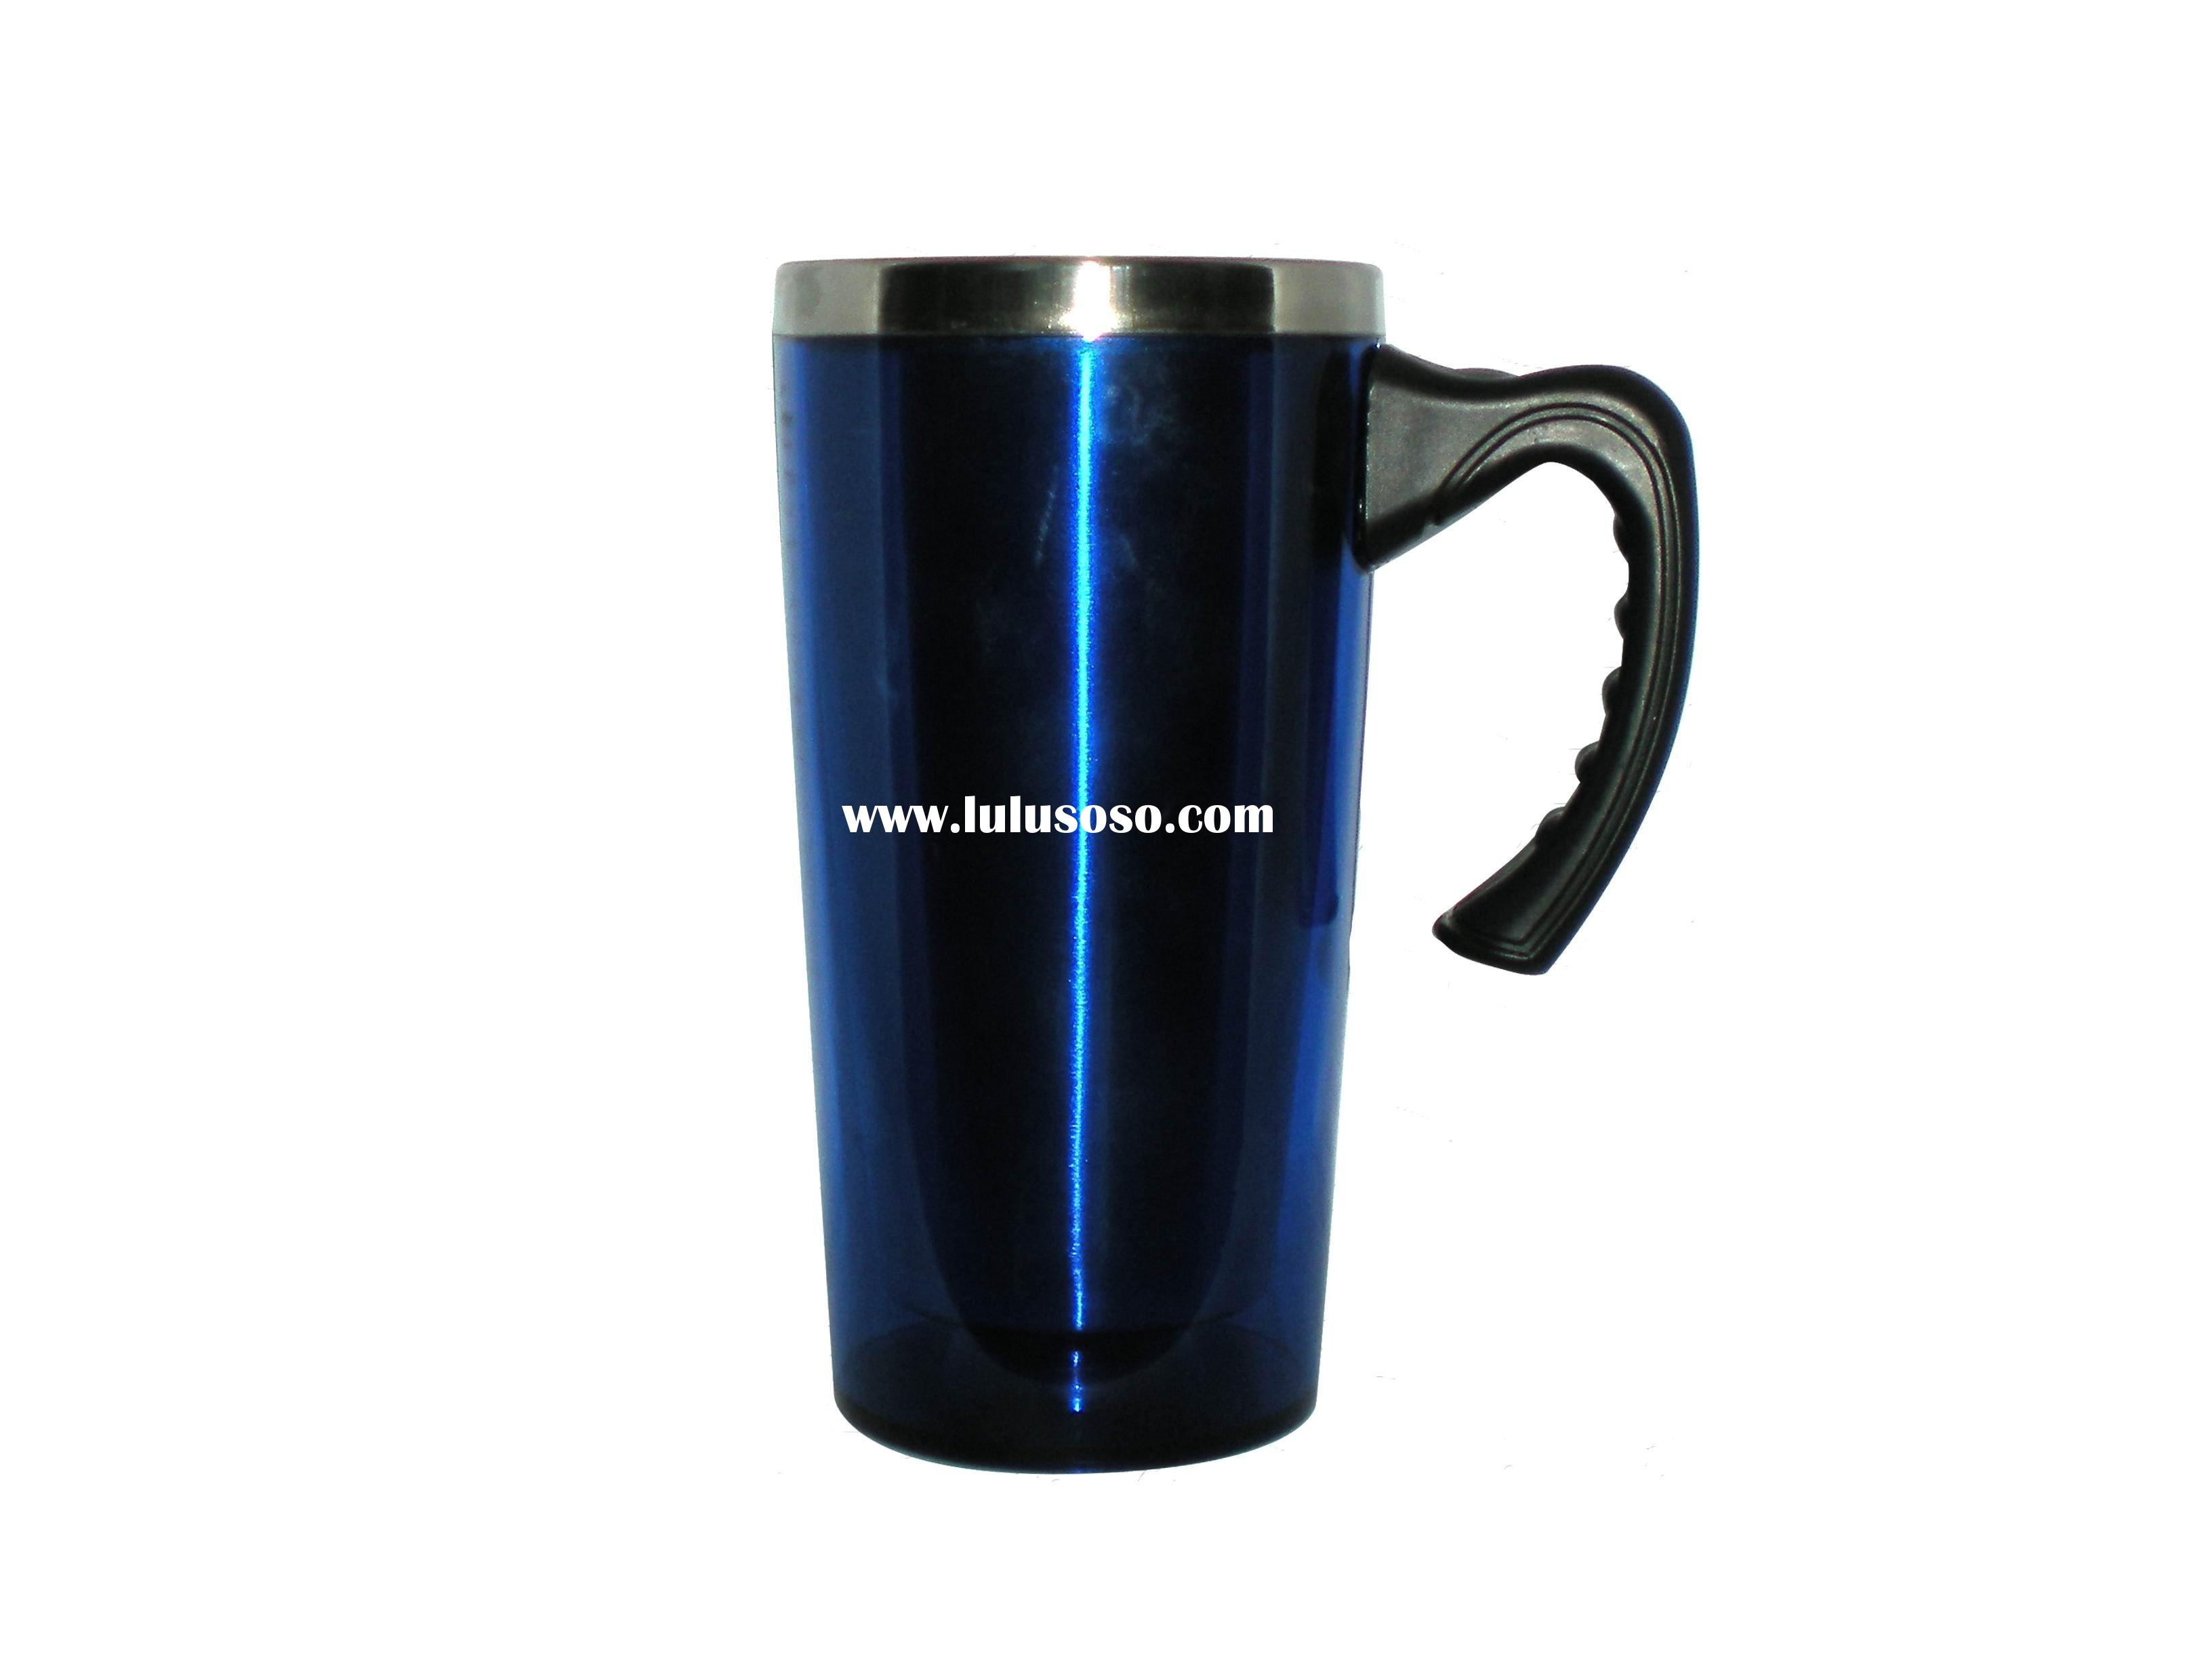 stainless steel travel mugs,car mug,mugs